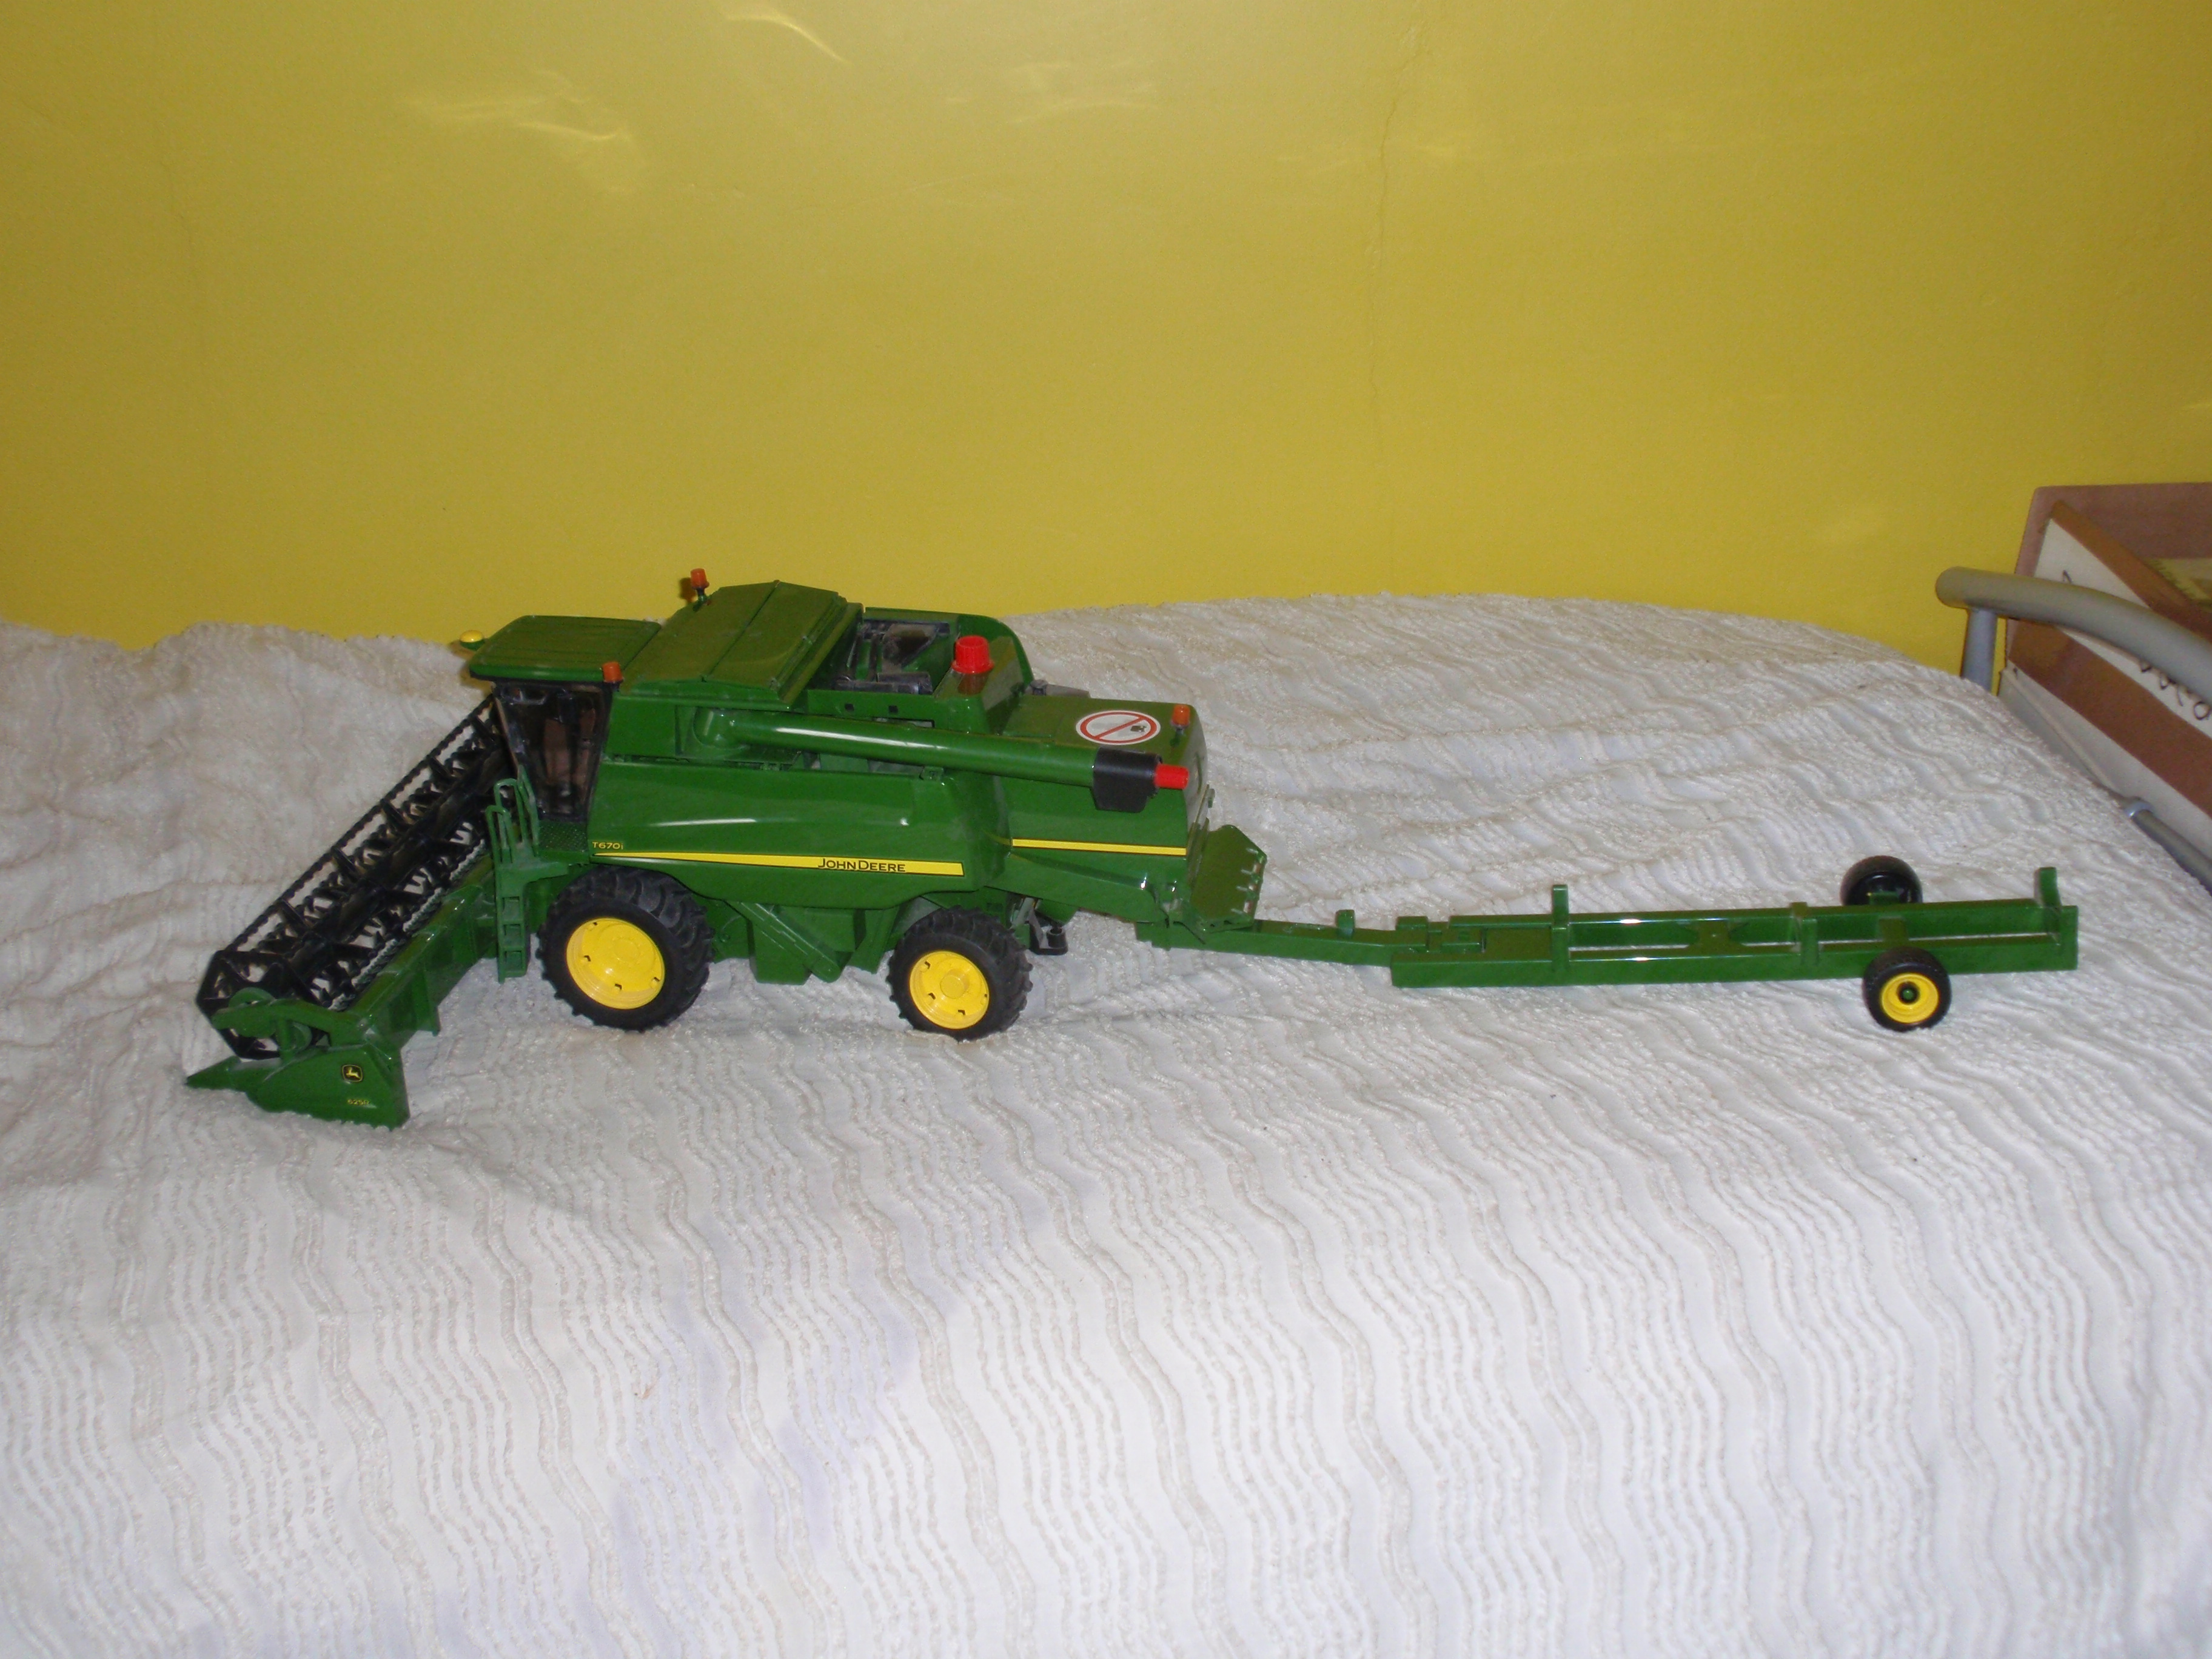 For sale: John Deere Scale Model 1 64 - Buy and sell items